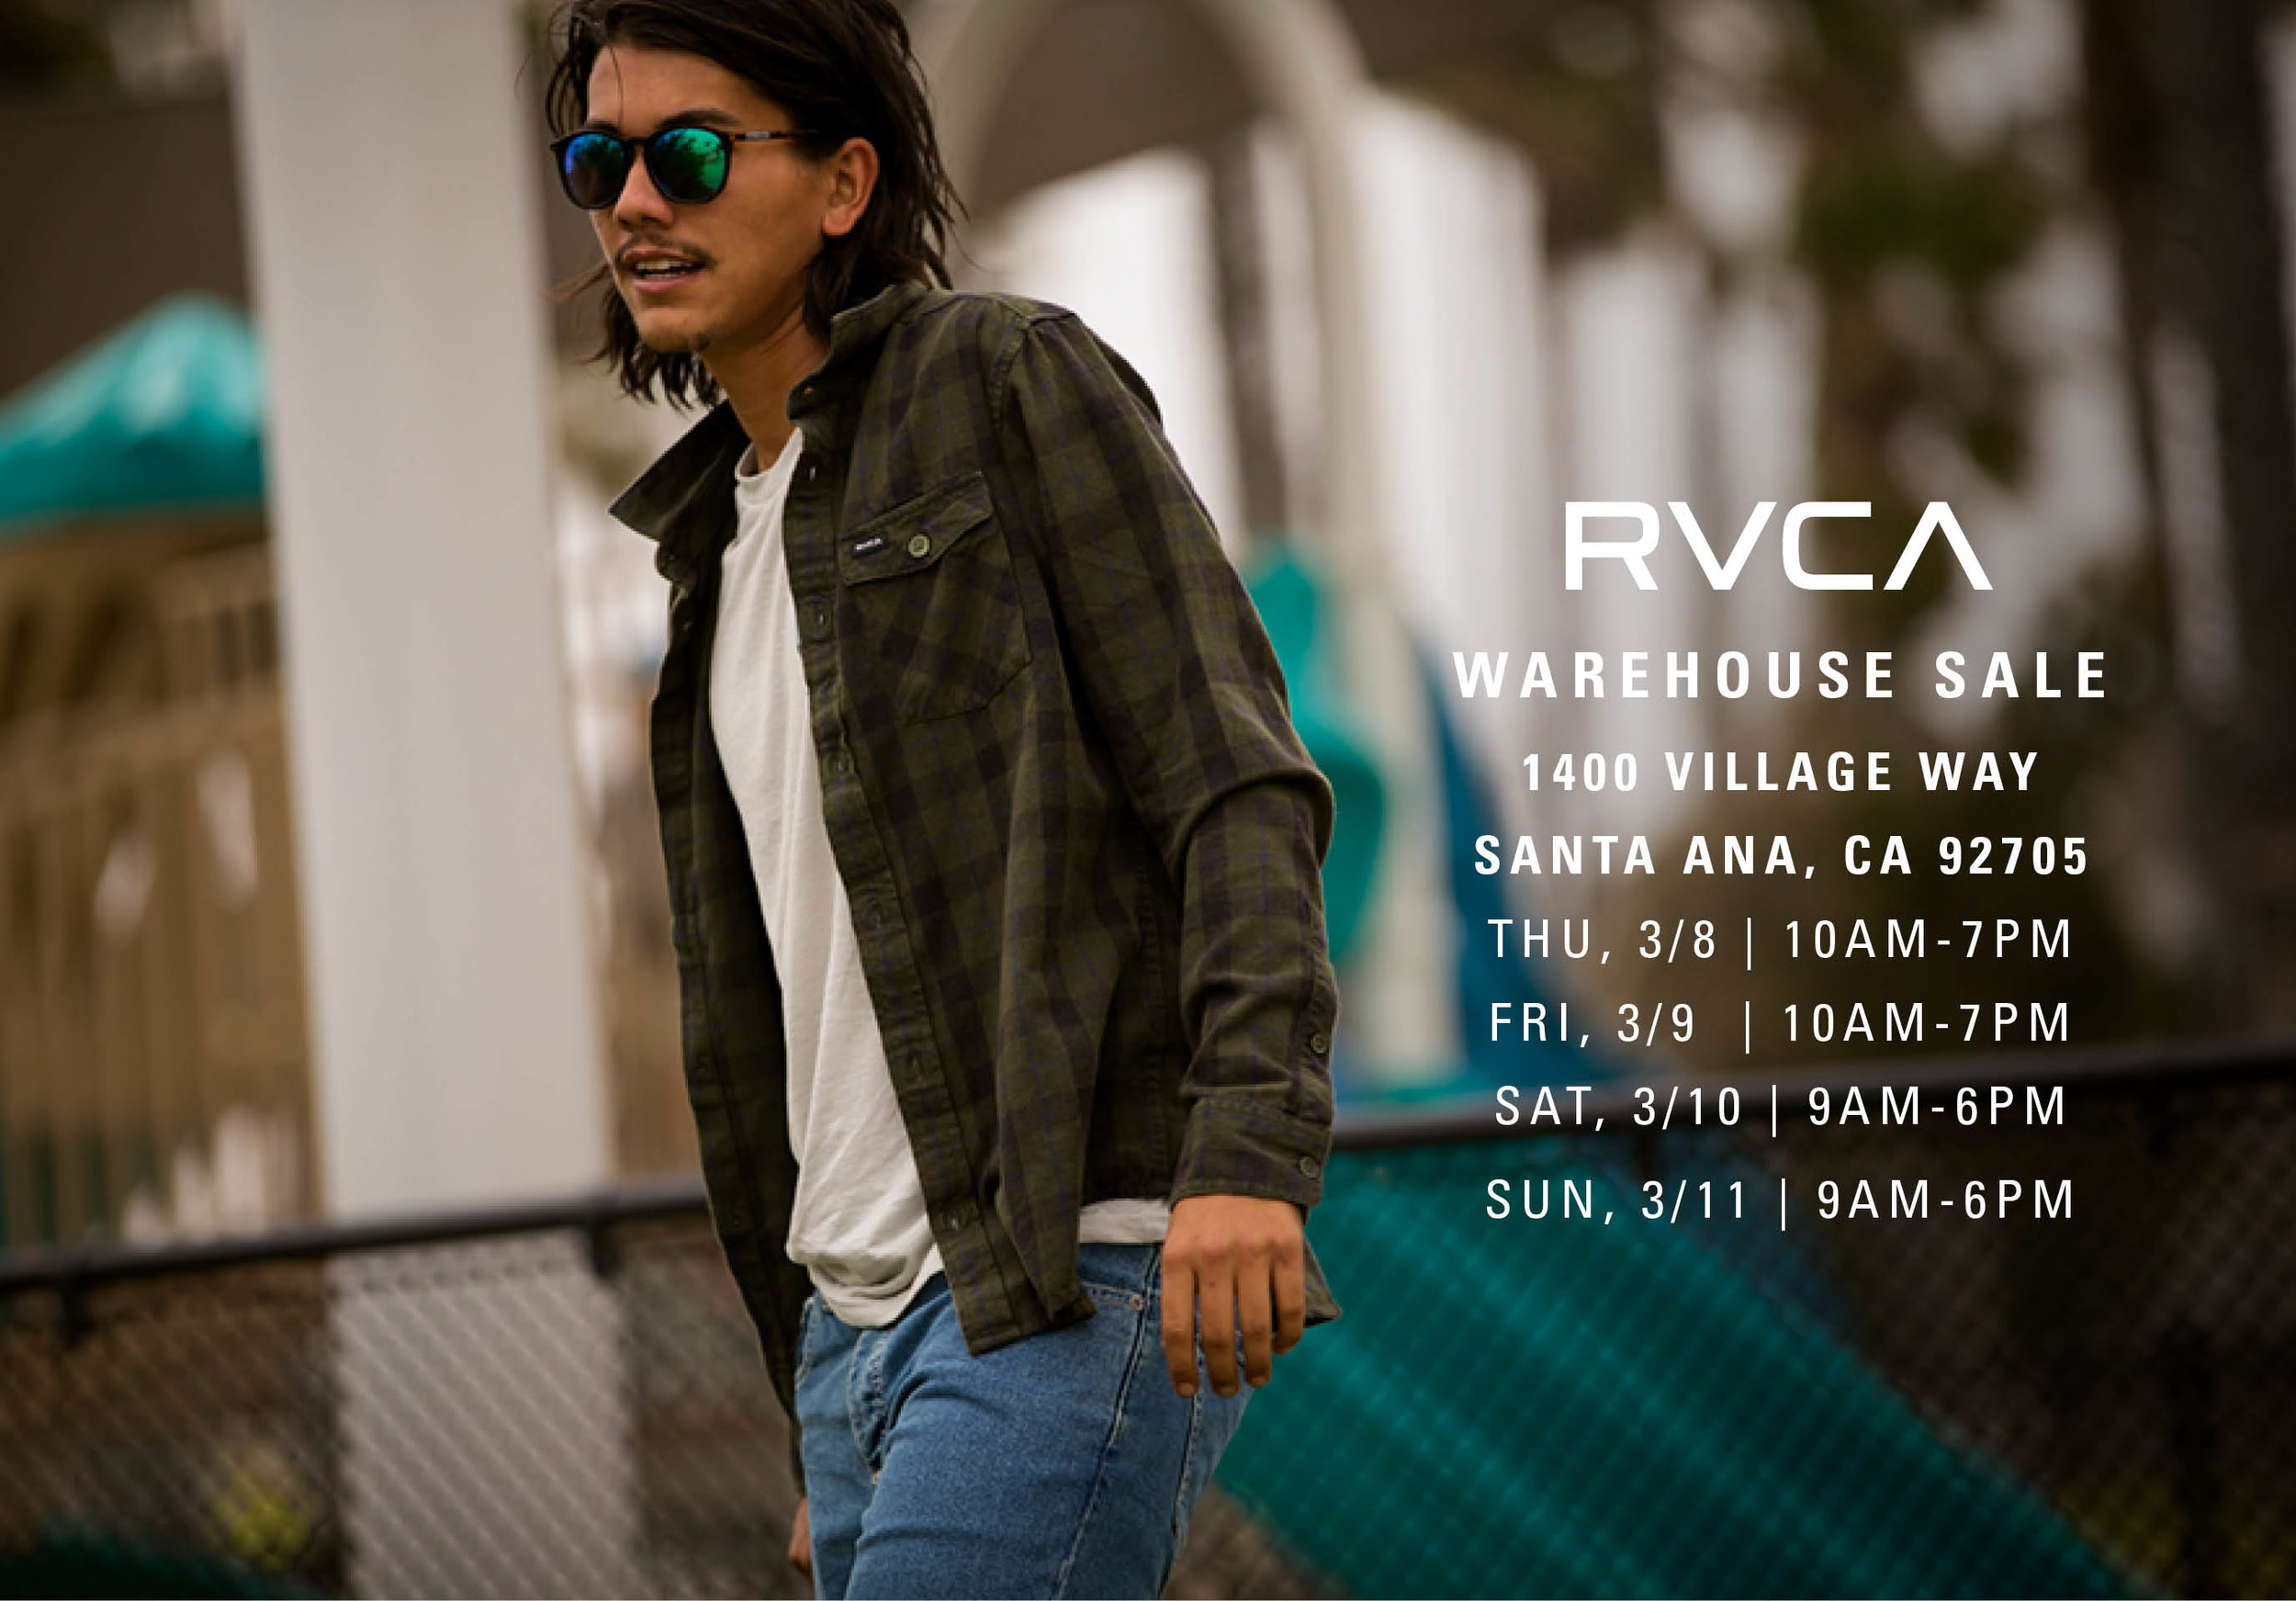 RVCA_WH SALE-MENS-EMAIL-660 X 640.jpg